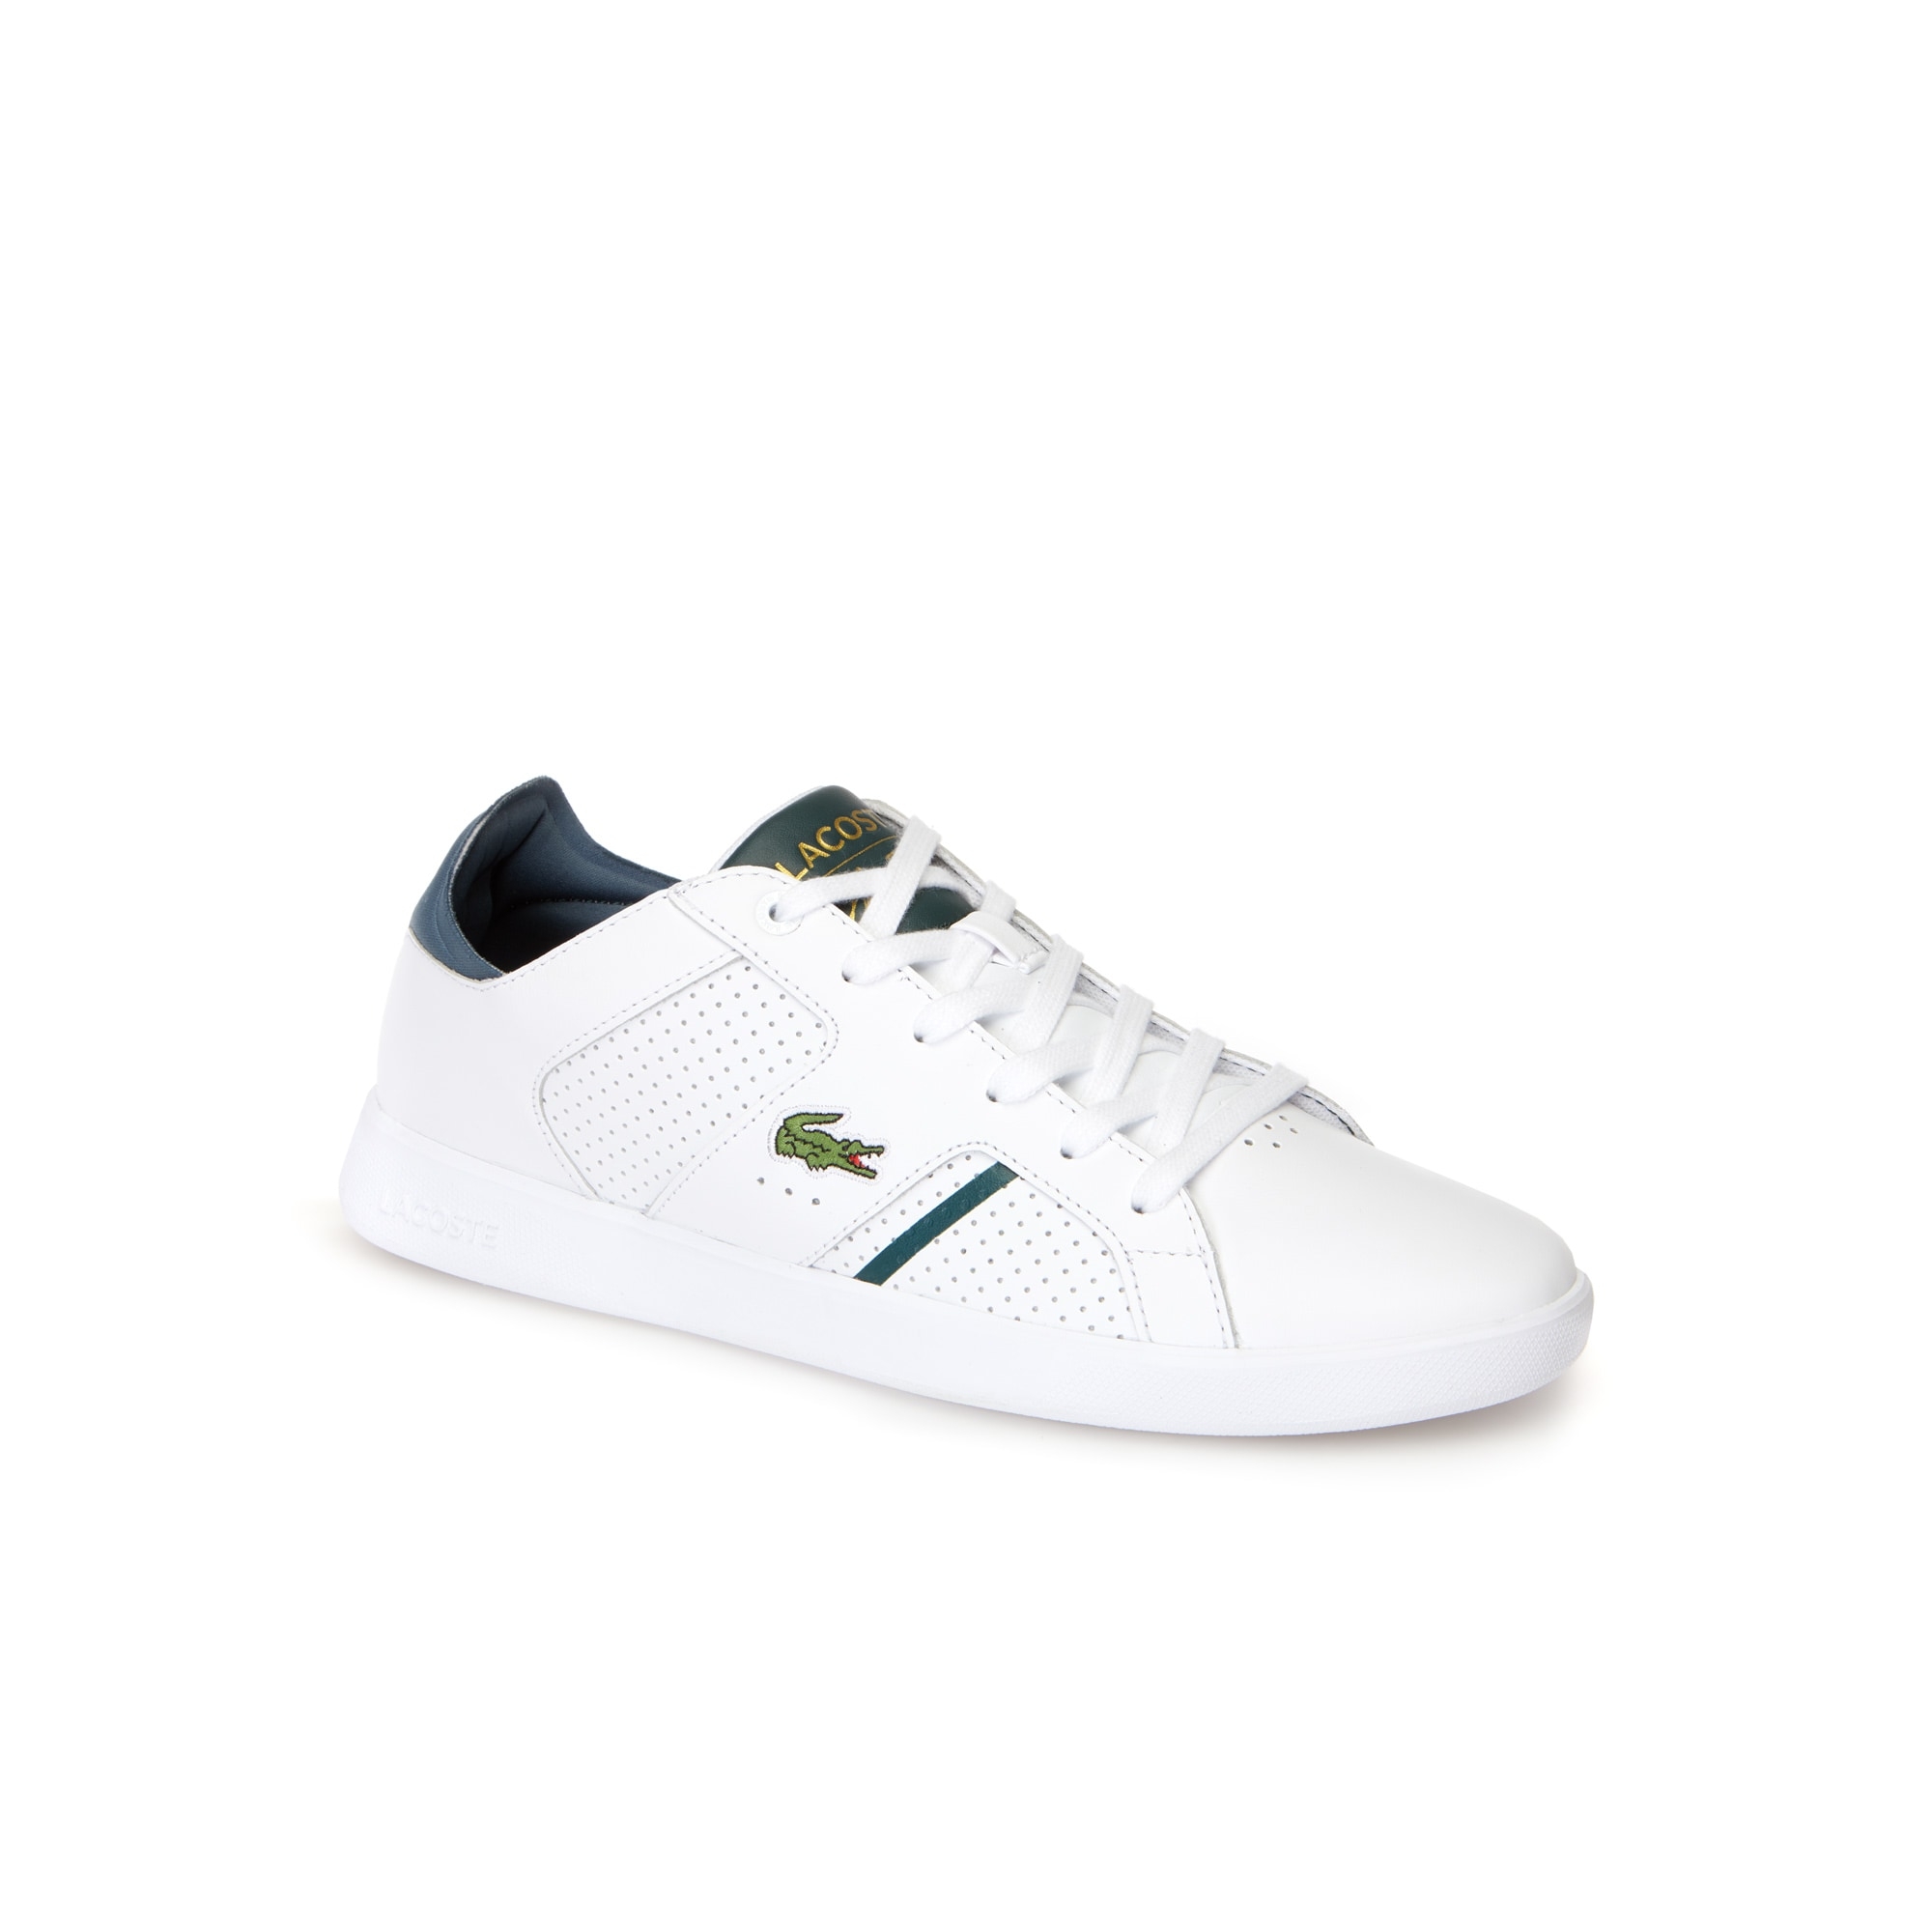 Men's Novas CT Leather and Textile Trainers